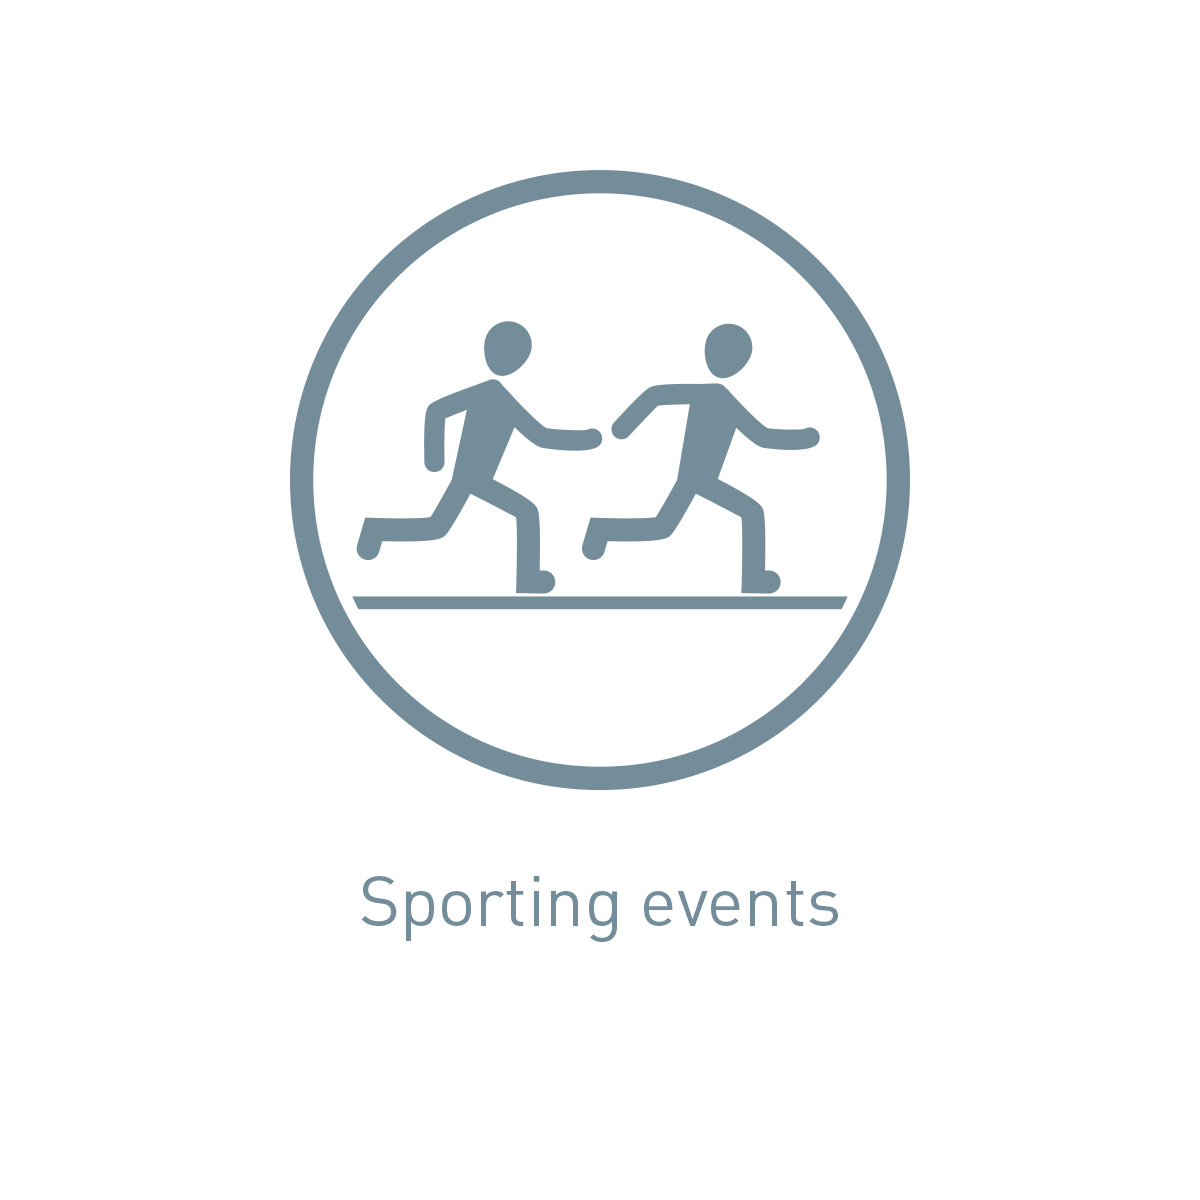 Icon sporting events